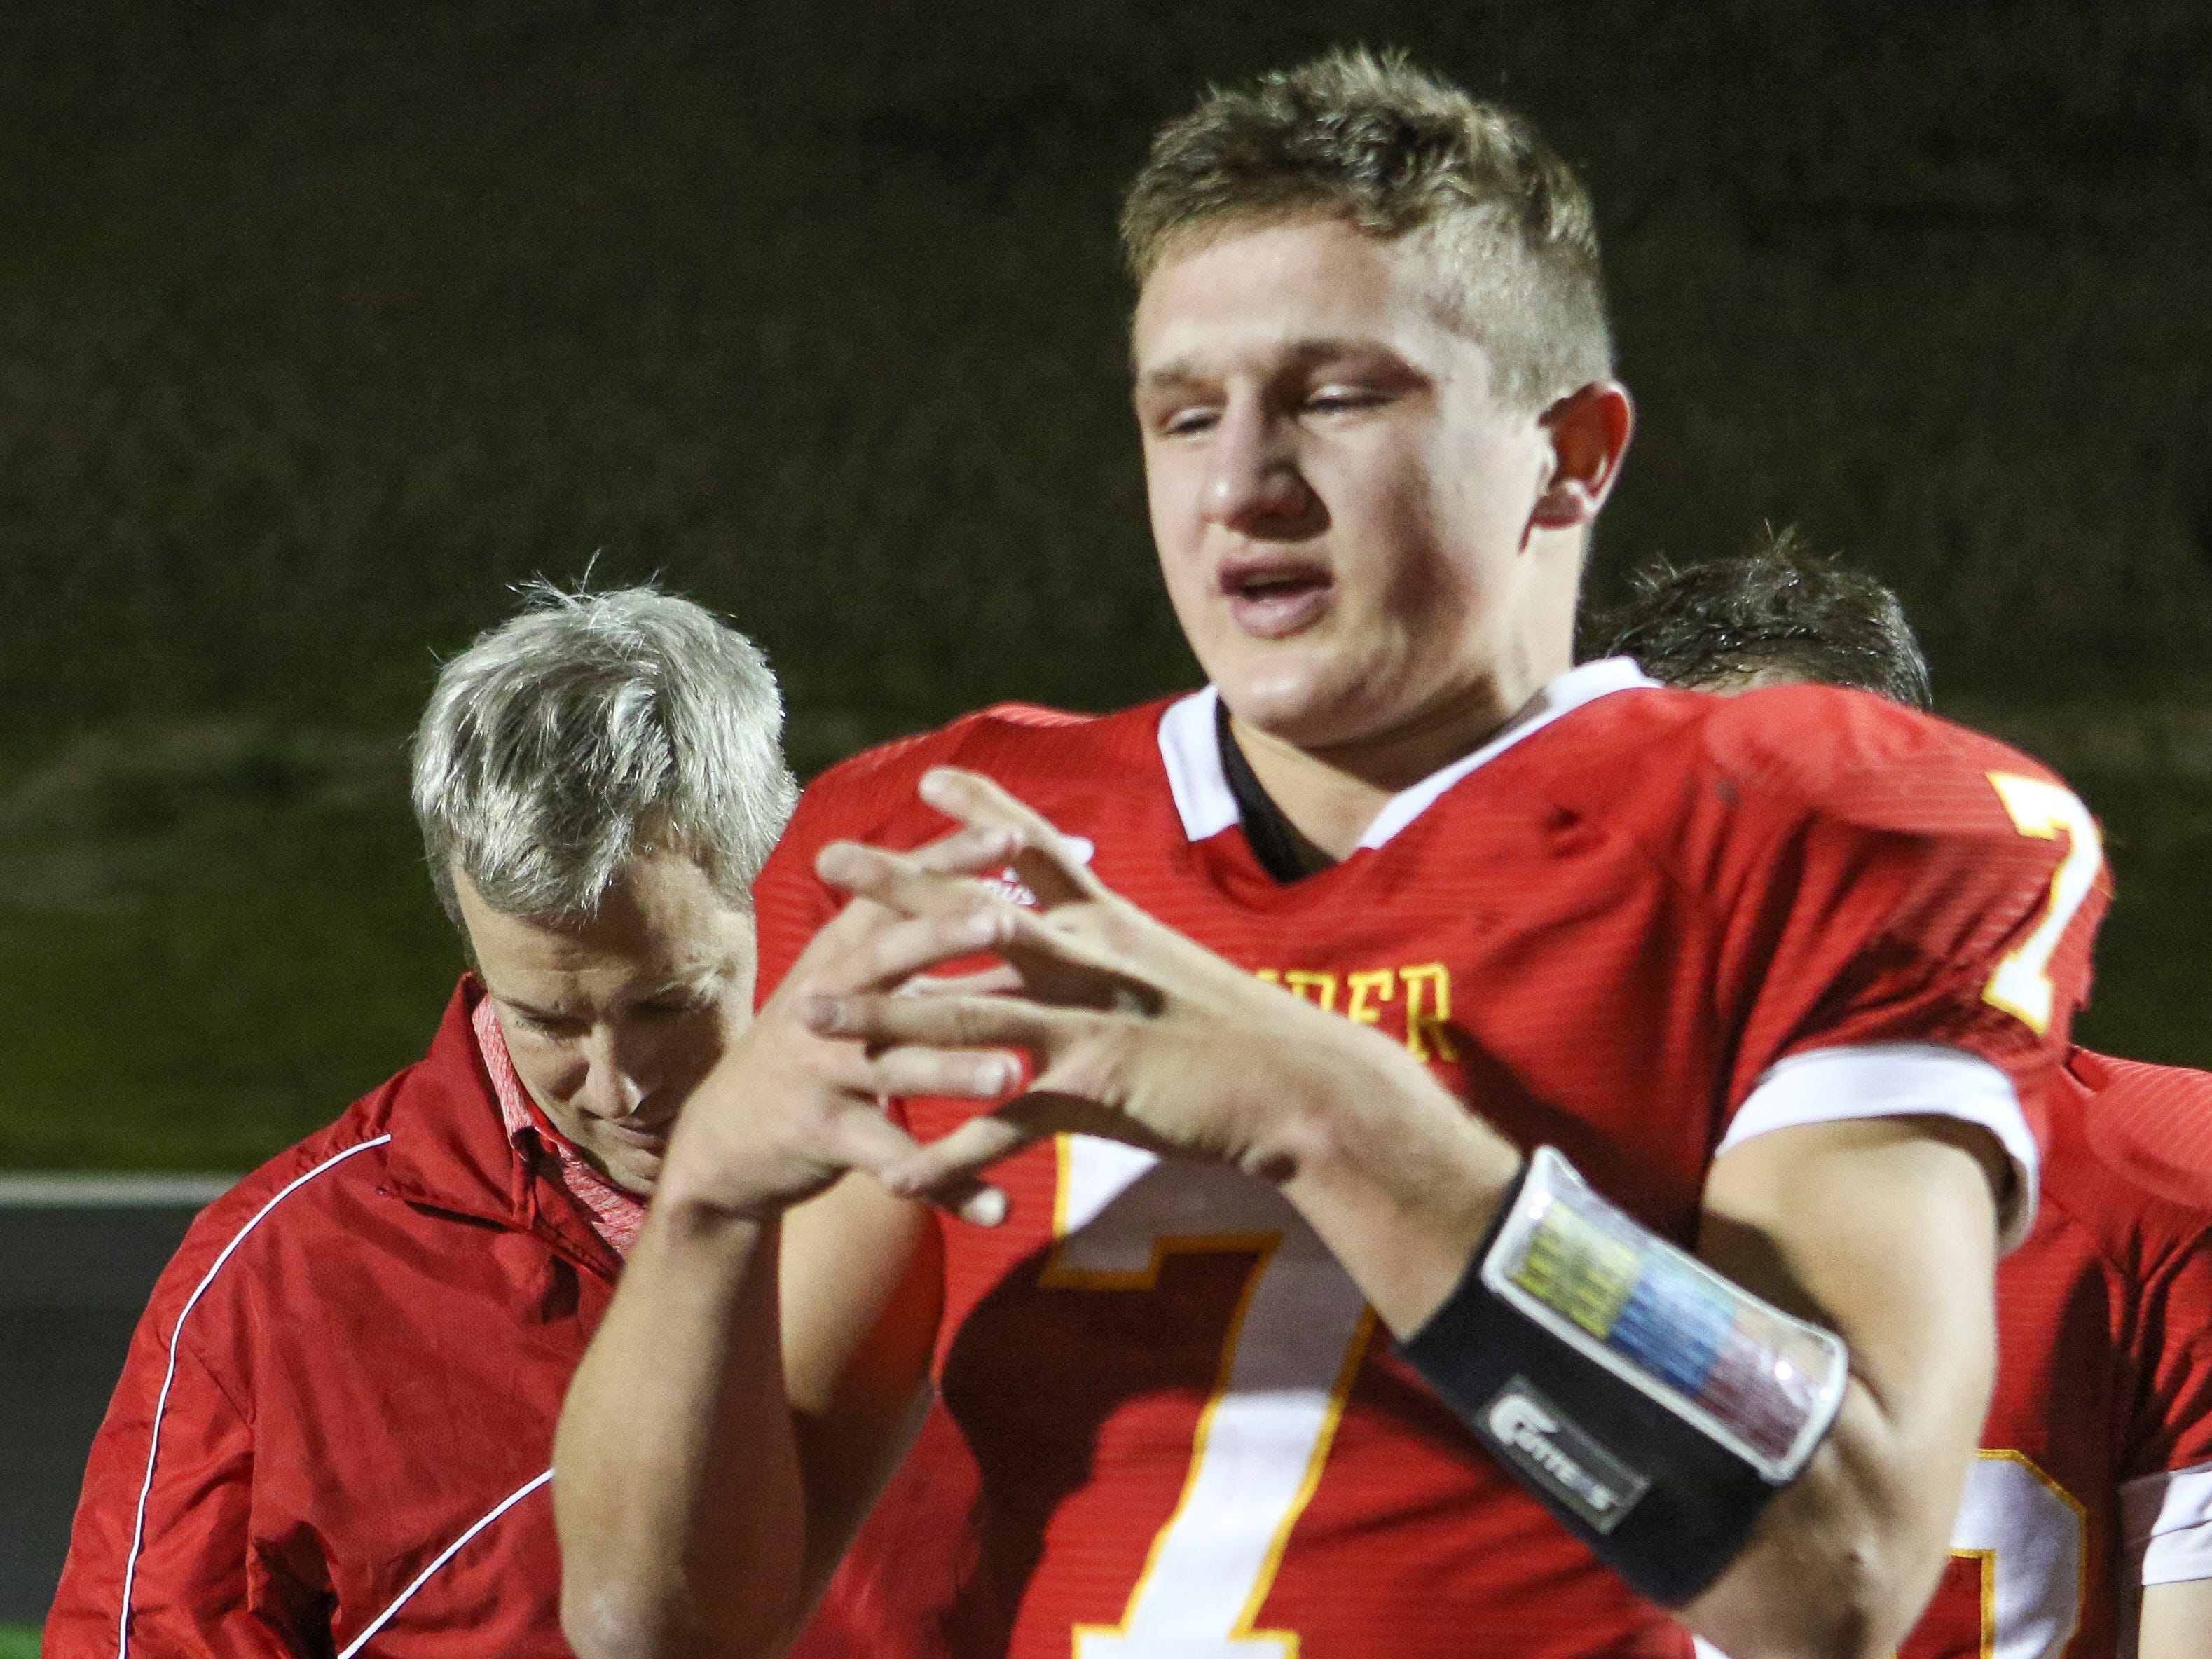 Gage Gunnerson playing football at Carroll Kuemper High School. Gunnerson, a four-sport standout at Kuemper, recently changed roles with the Iowa State University football team from manager to walk-on player.